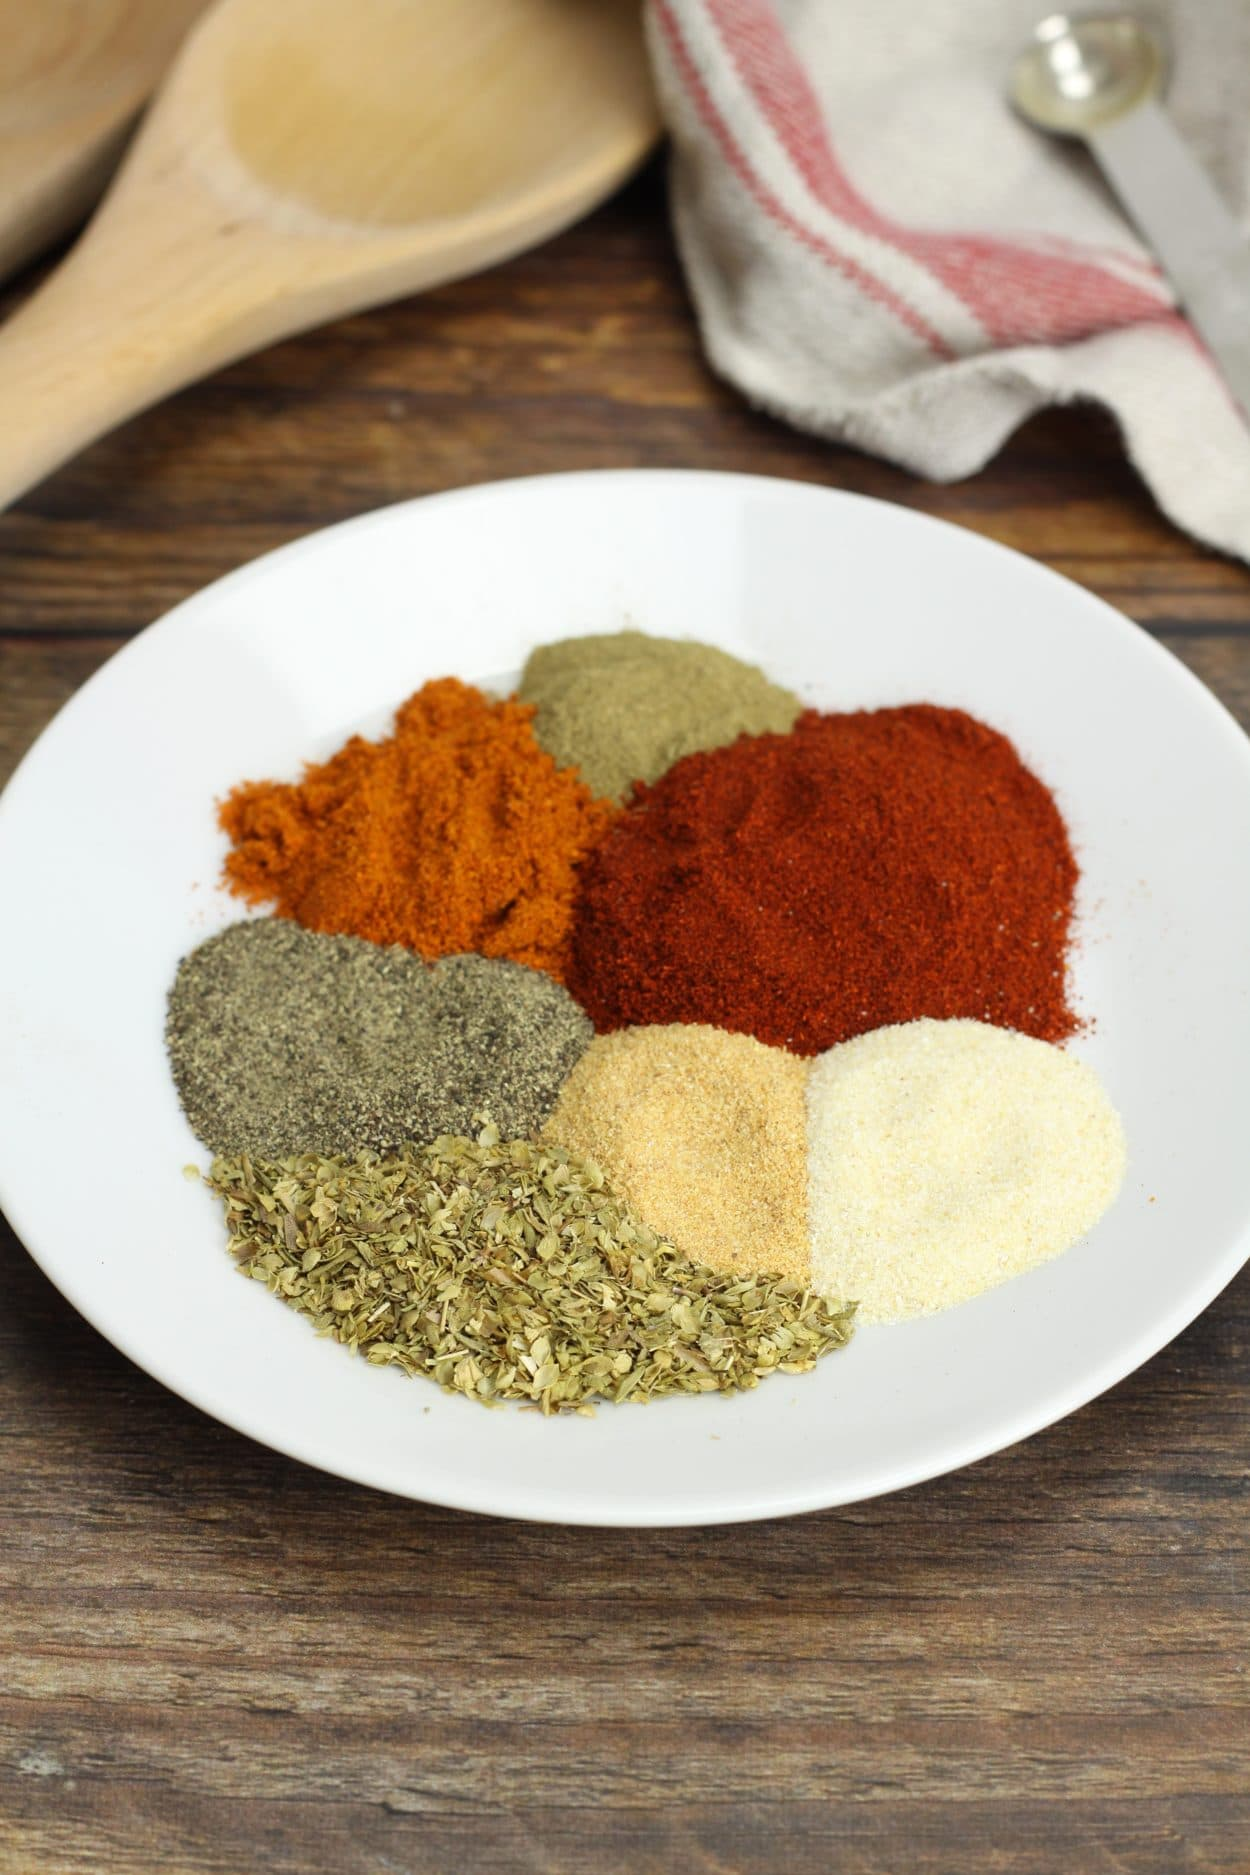 A white plate with a variety of spices and herbs.